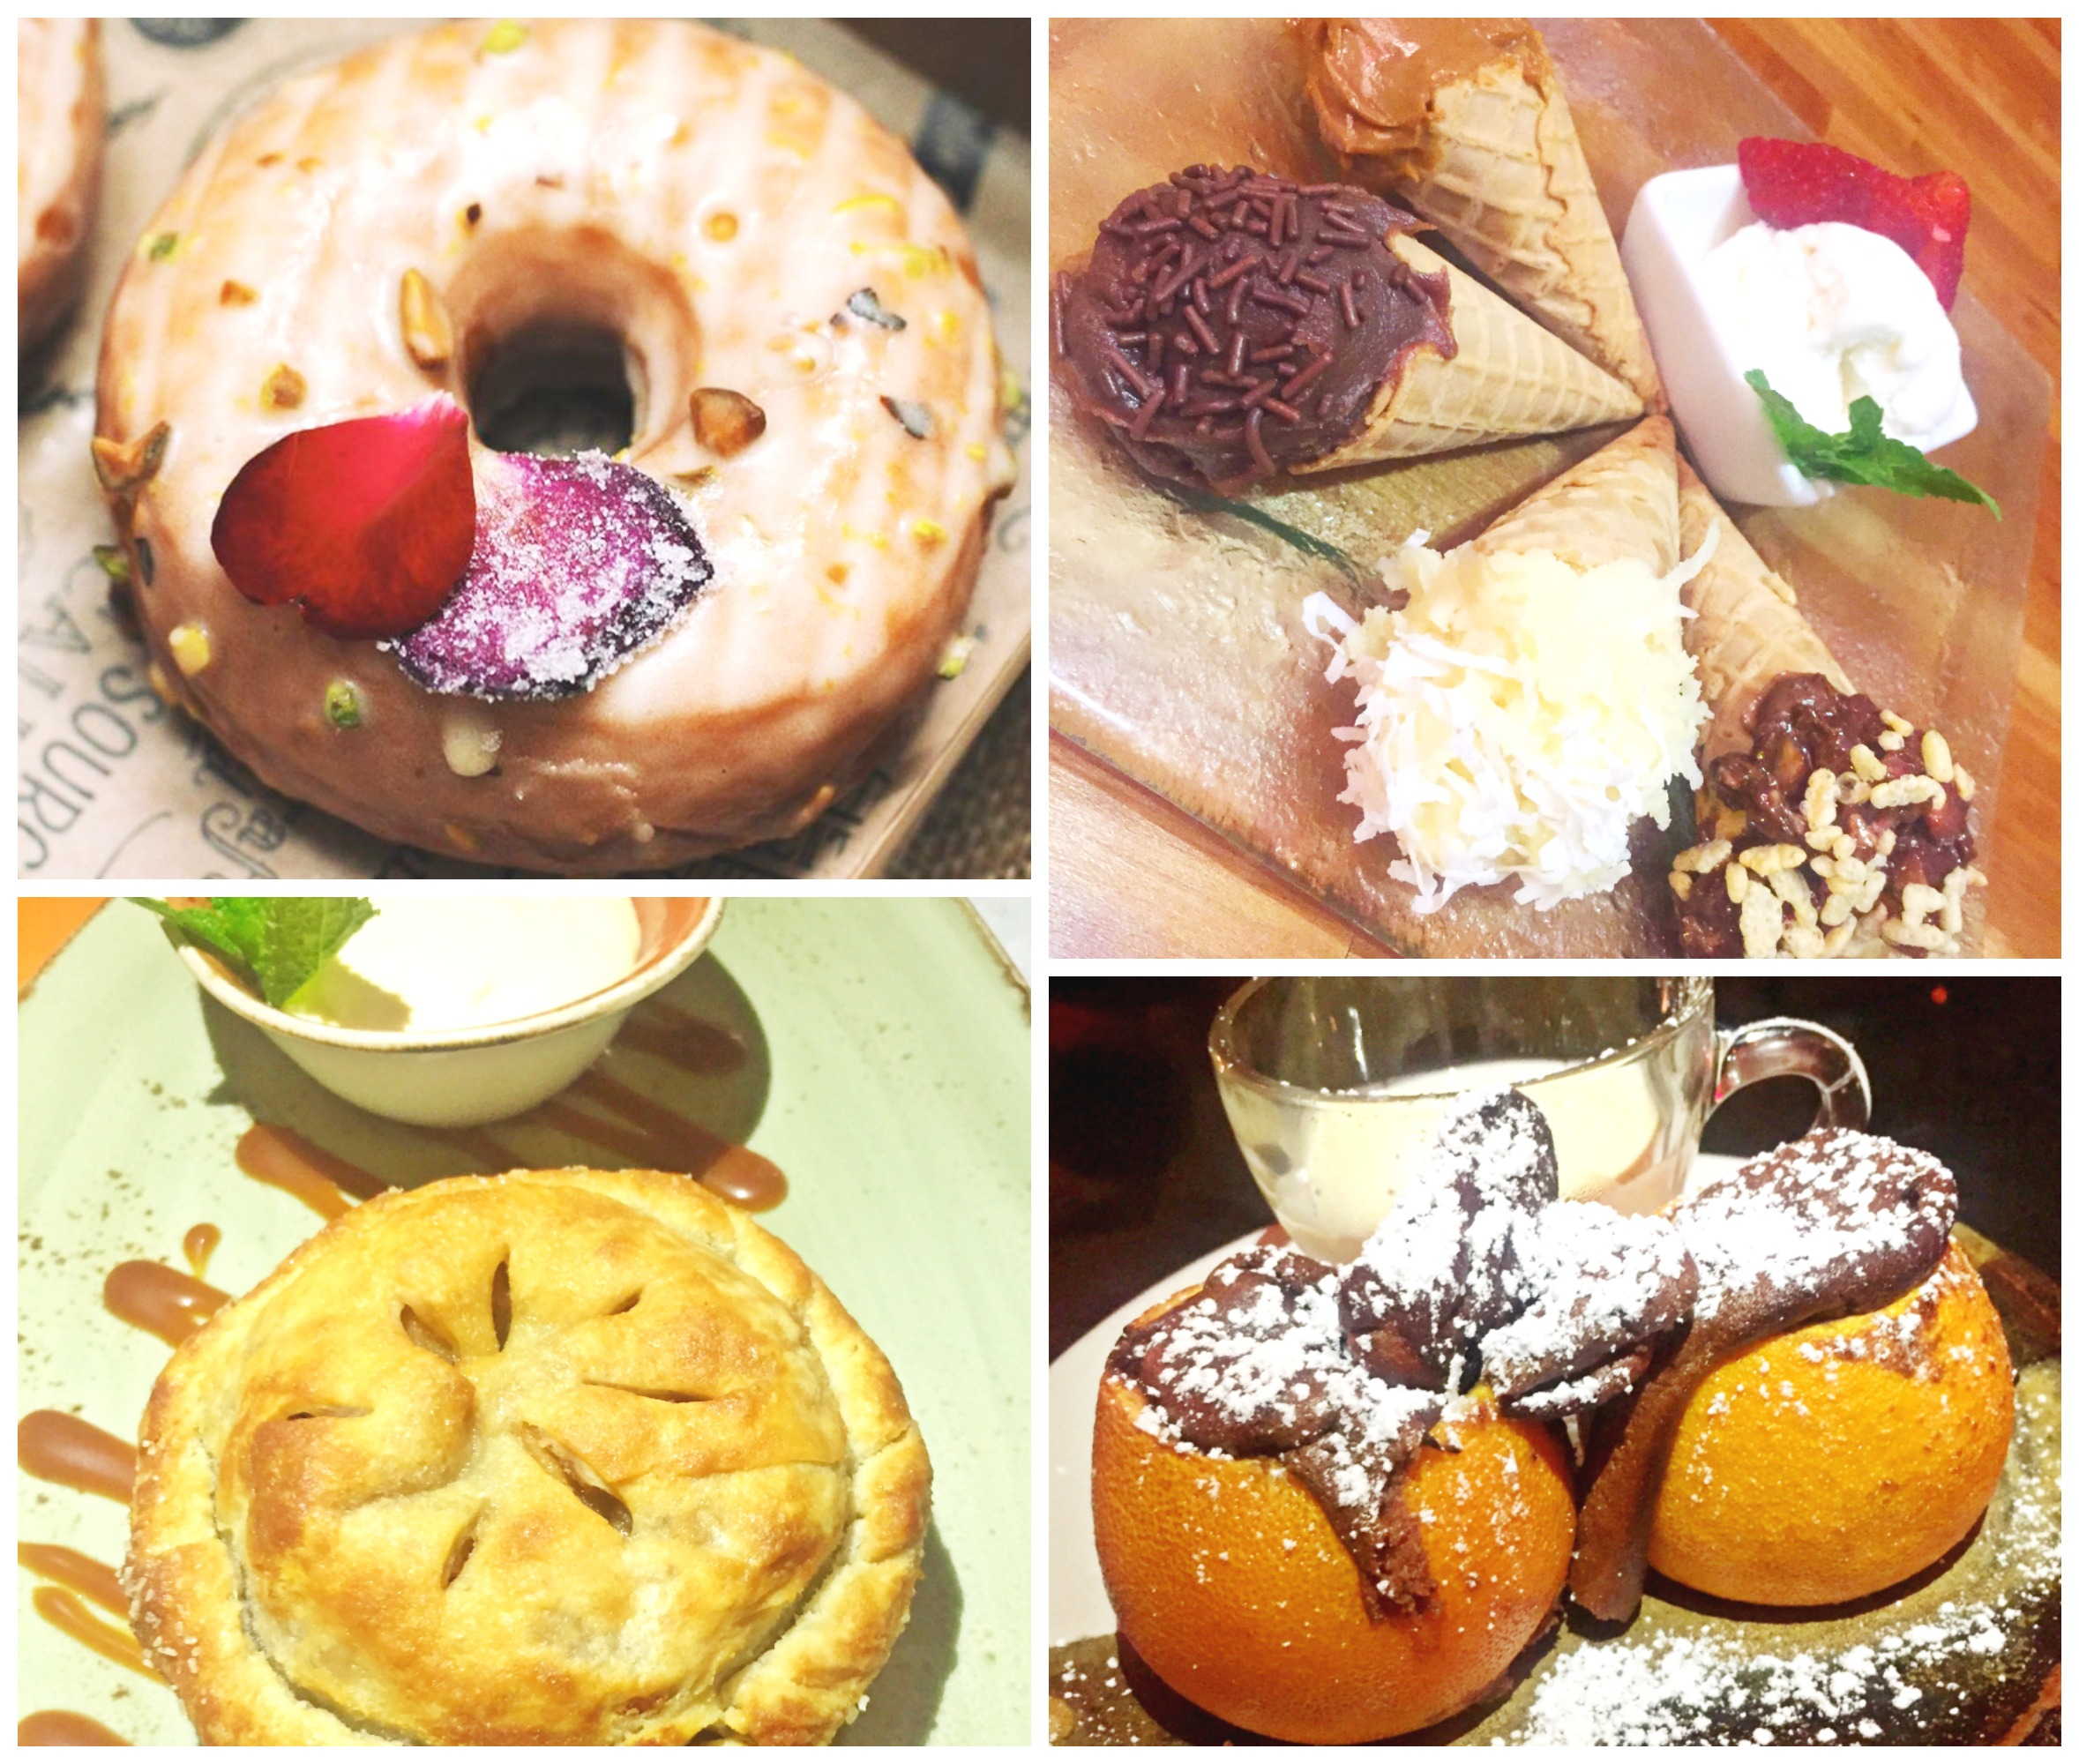 Miami Mother's Day desserts